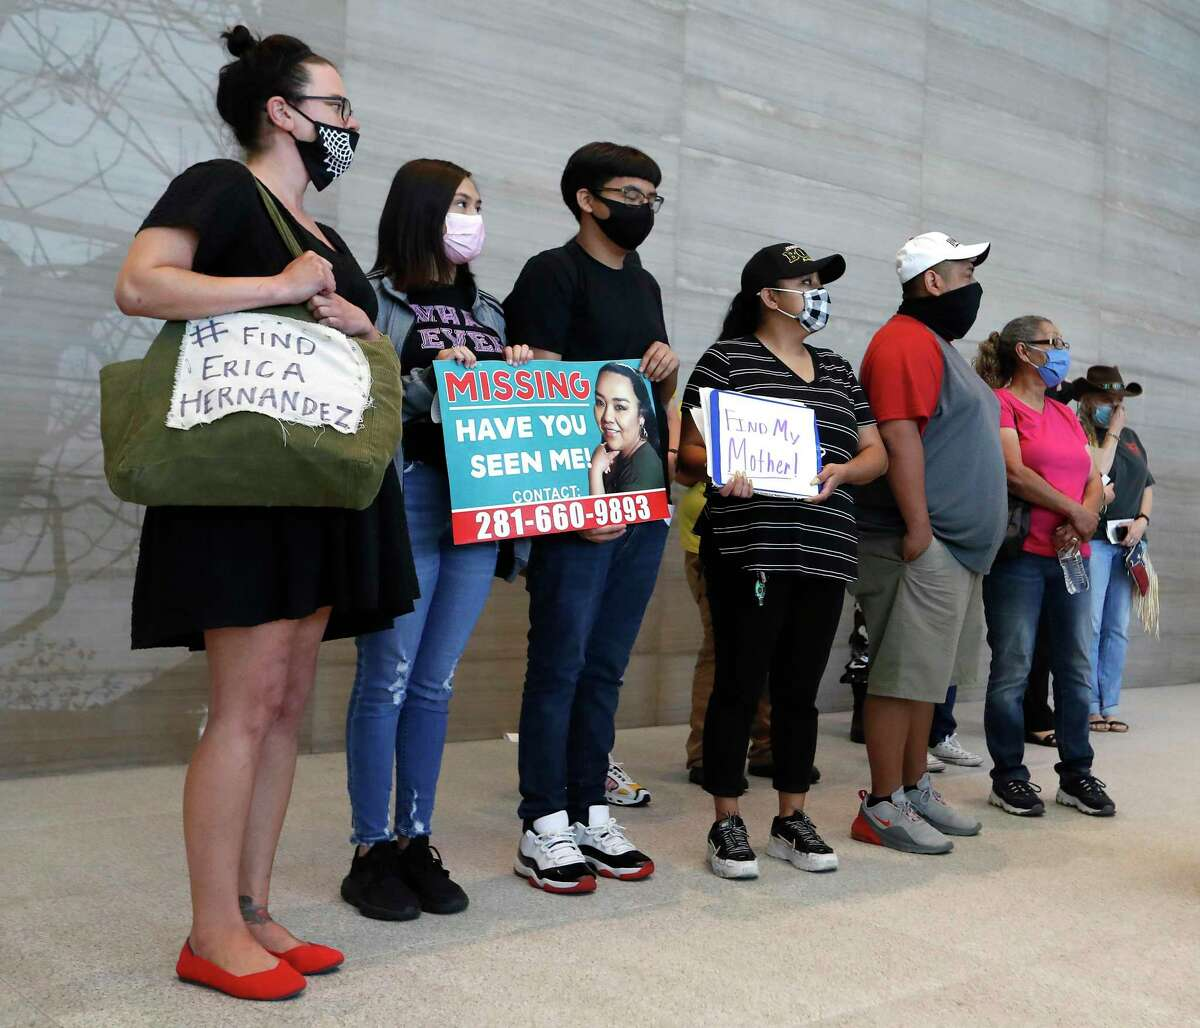 Friends and family of Erica Hernandez wait for Congresswoman Sheila Jackson Lee to start a press conference with law enforcement officials and the Hernandez family about the search for Hernandez, a Houston mother of three, who has been missing for a week at the Mickey Leland Federal Building, Monday, April 26, 2021, in Houston.